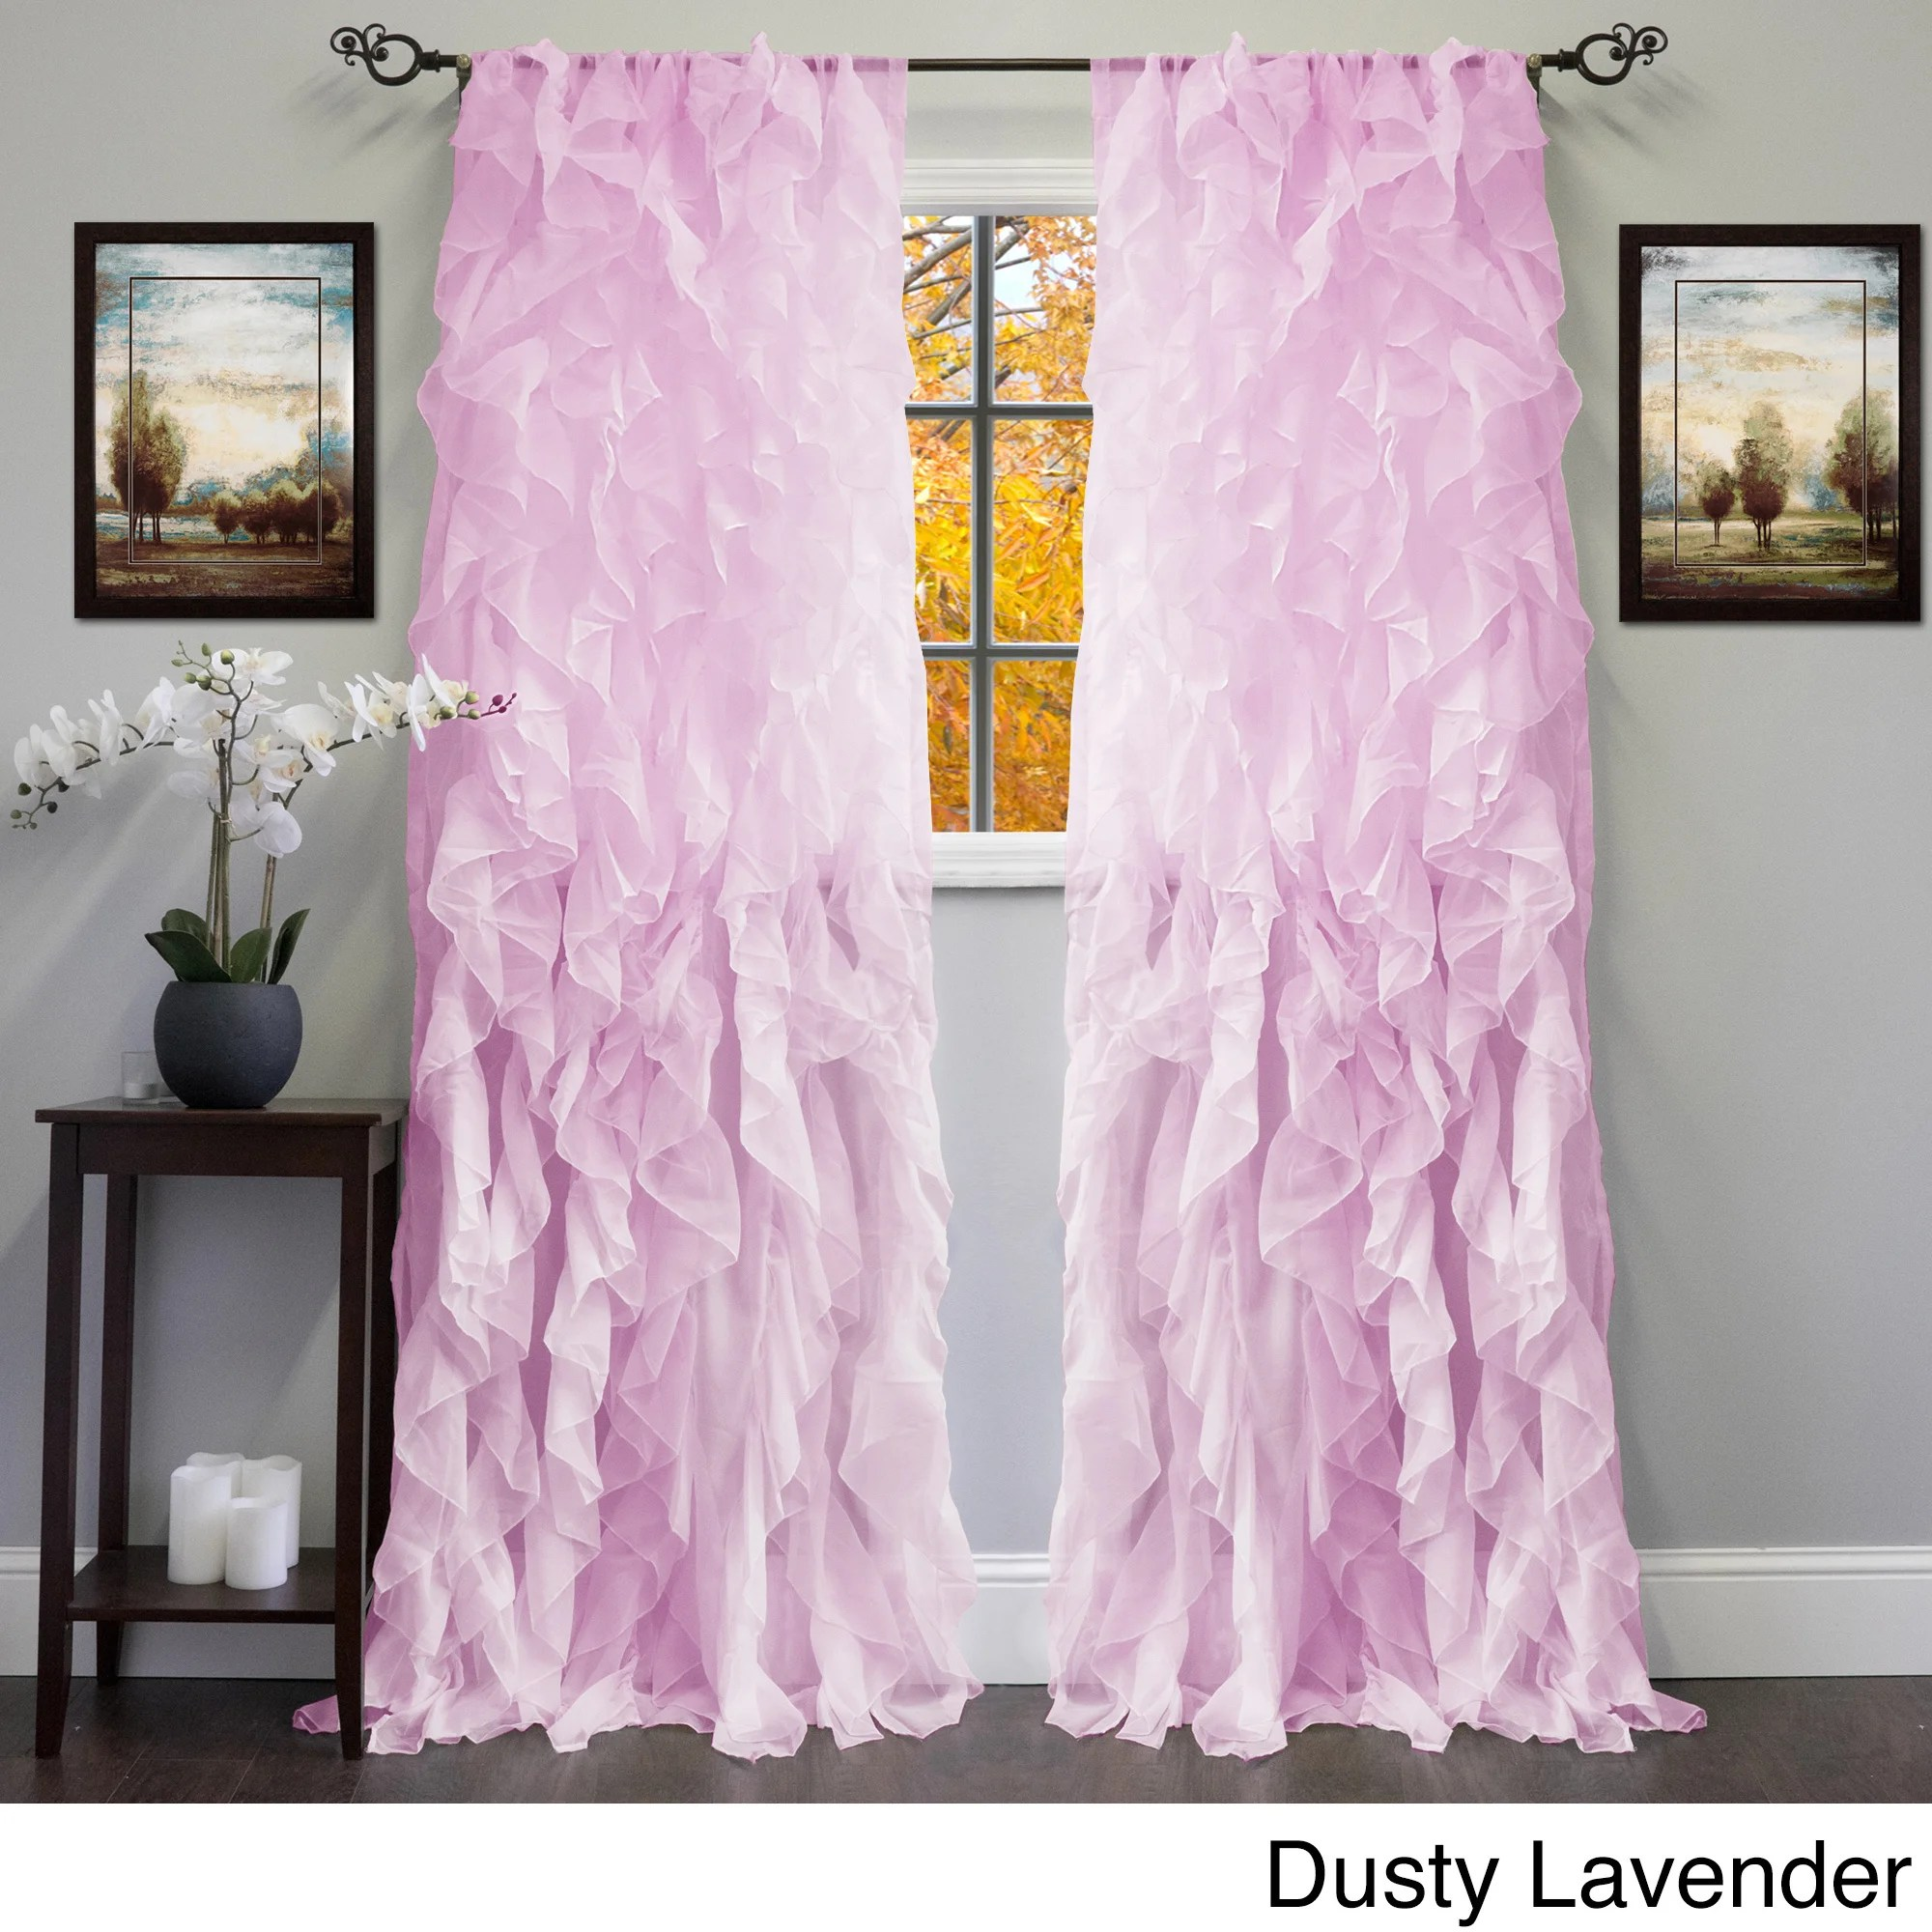 Lavender Sheer Curtains Sheer Voile Ruffled Tier Window Curtain Panel 50 X 84